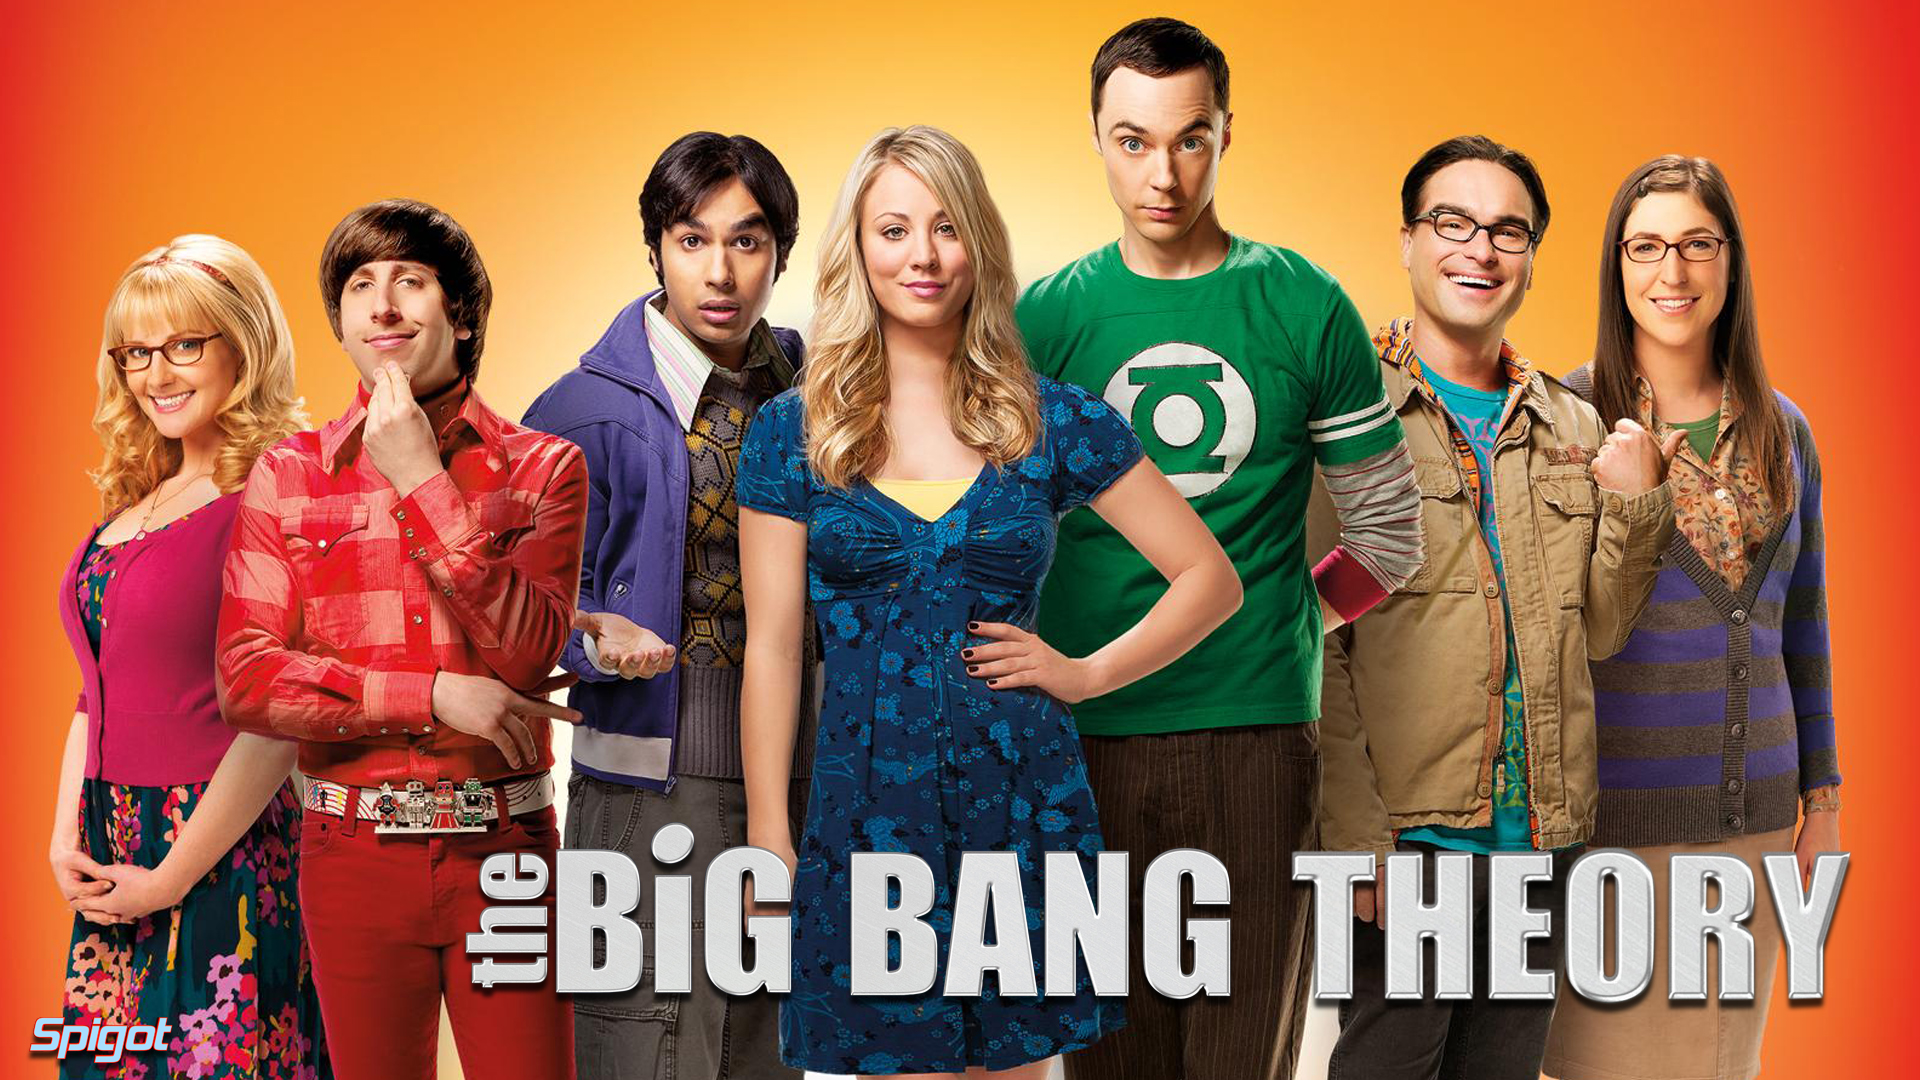 Big Bang Theory -- love its hilarious smarty-pants humor! {Sunday Funday #3 on foodsforthesoul.net}